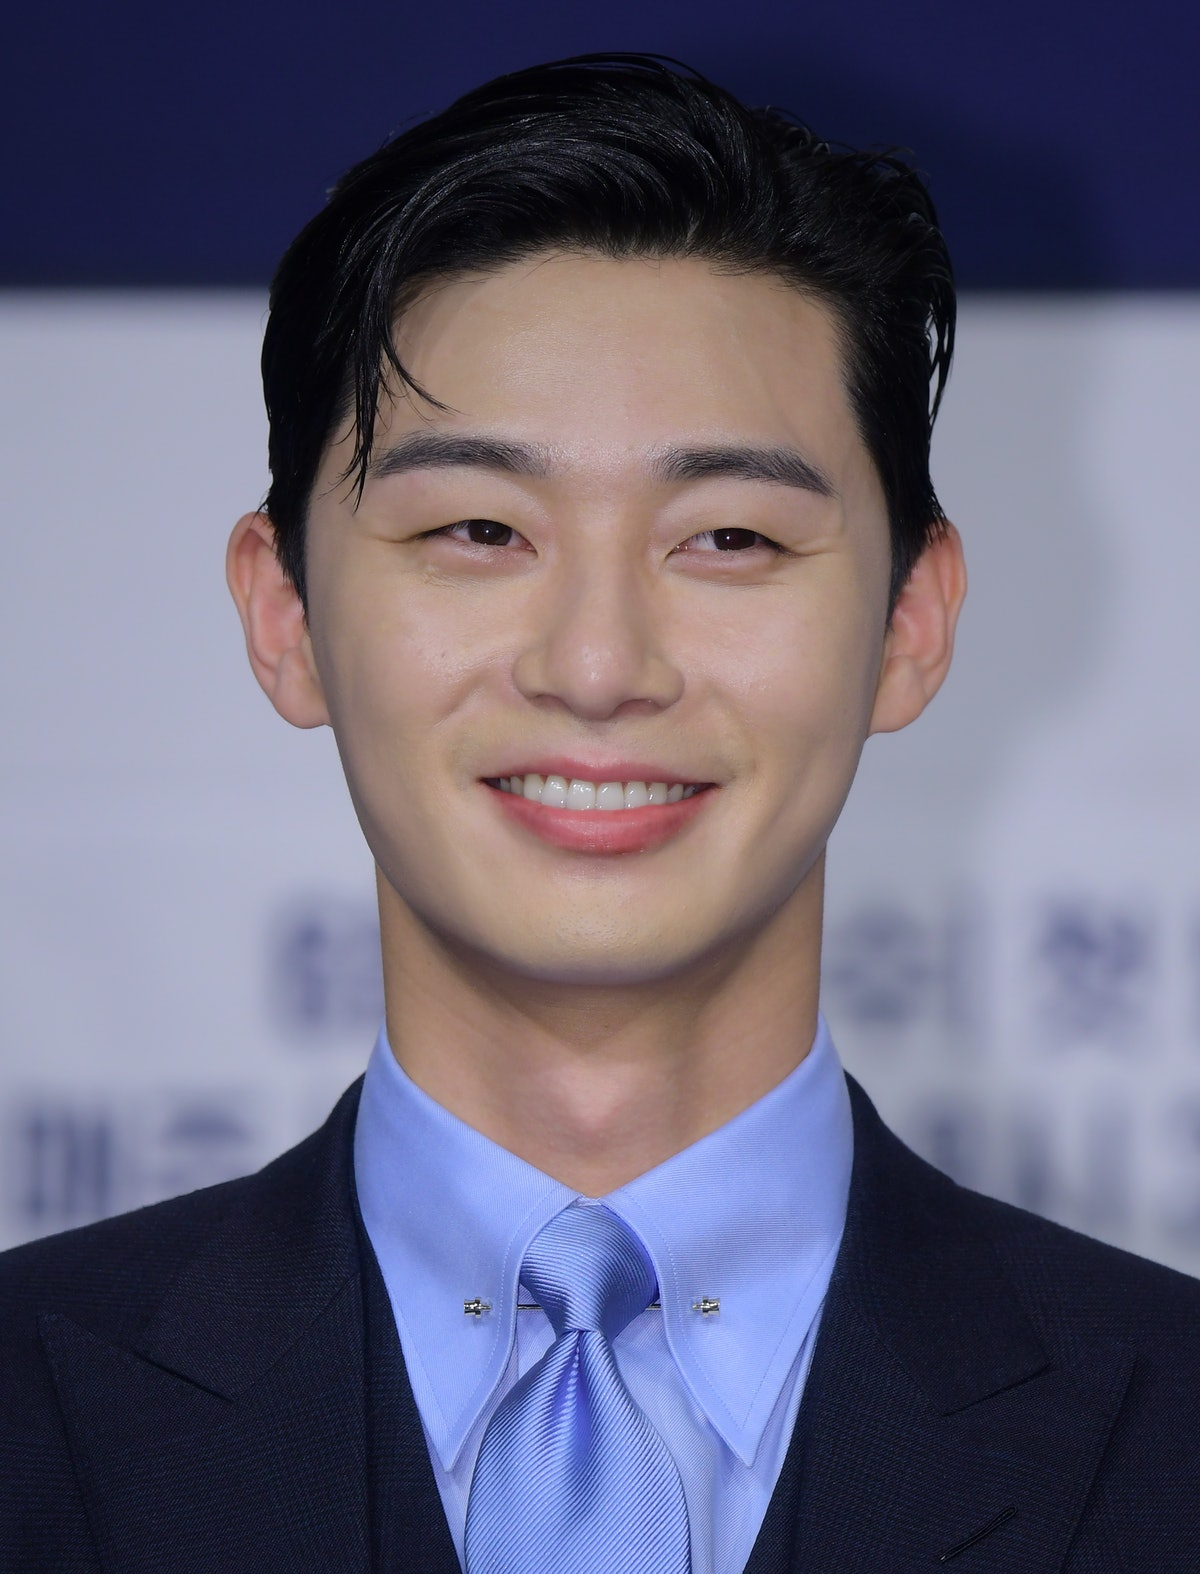 SEOUL, SOUTH KOREA - MAY 30: Actor Park Seo-Joon during tvN drama 'What's Wrong with Secretary Kim' ...